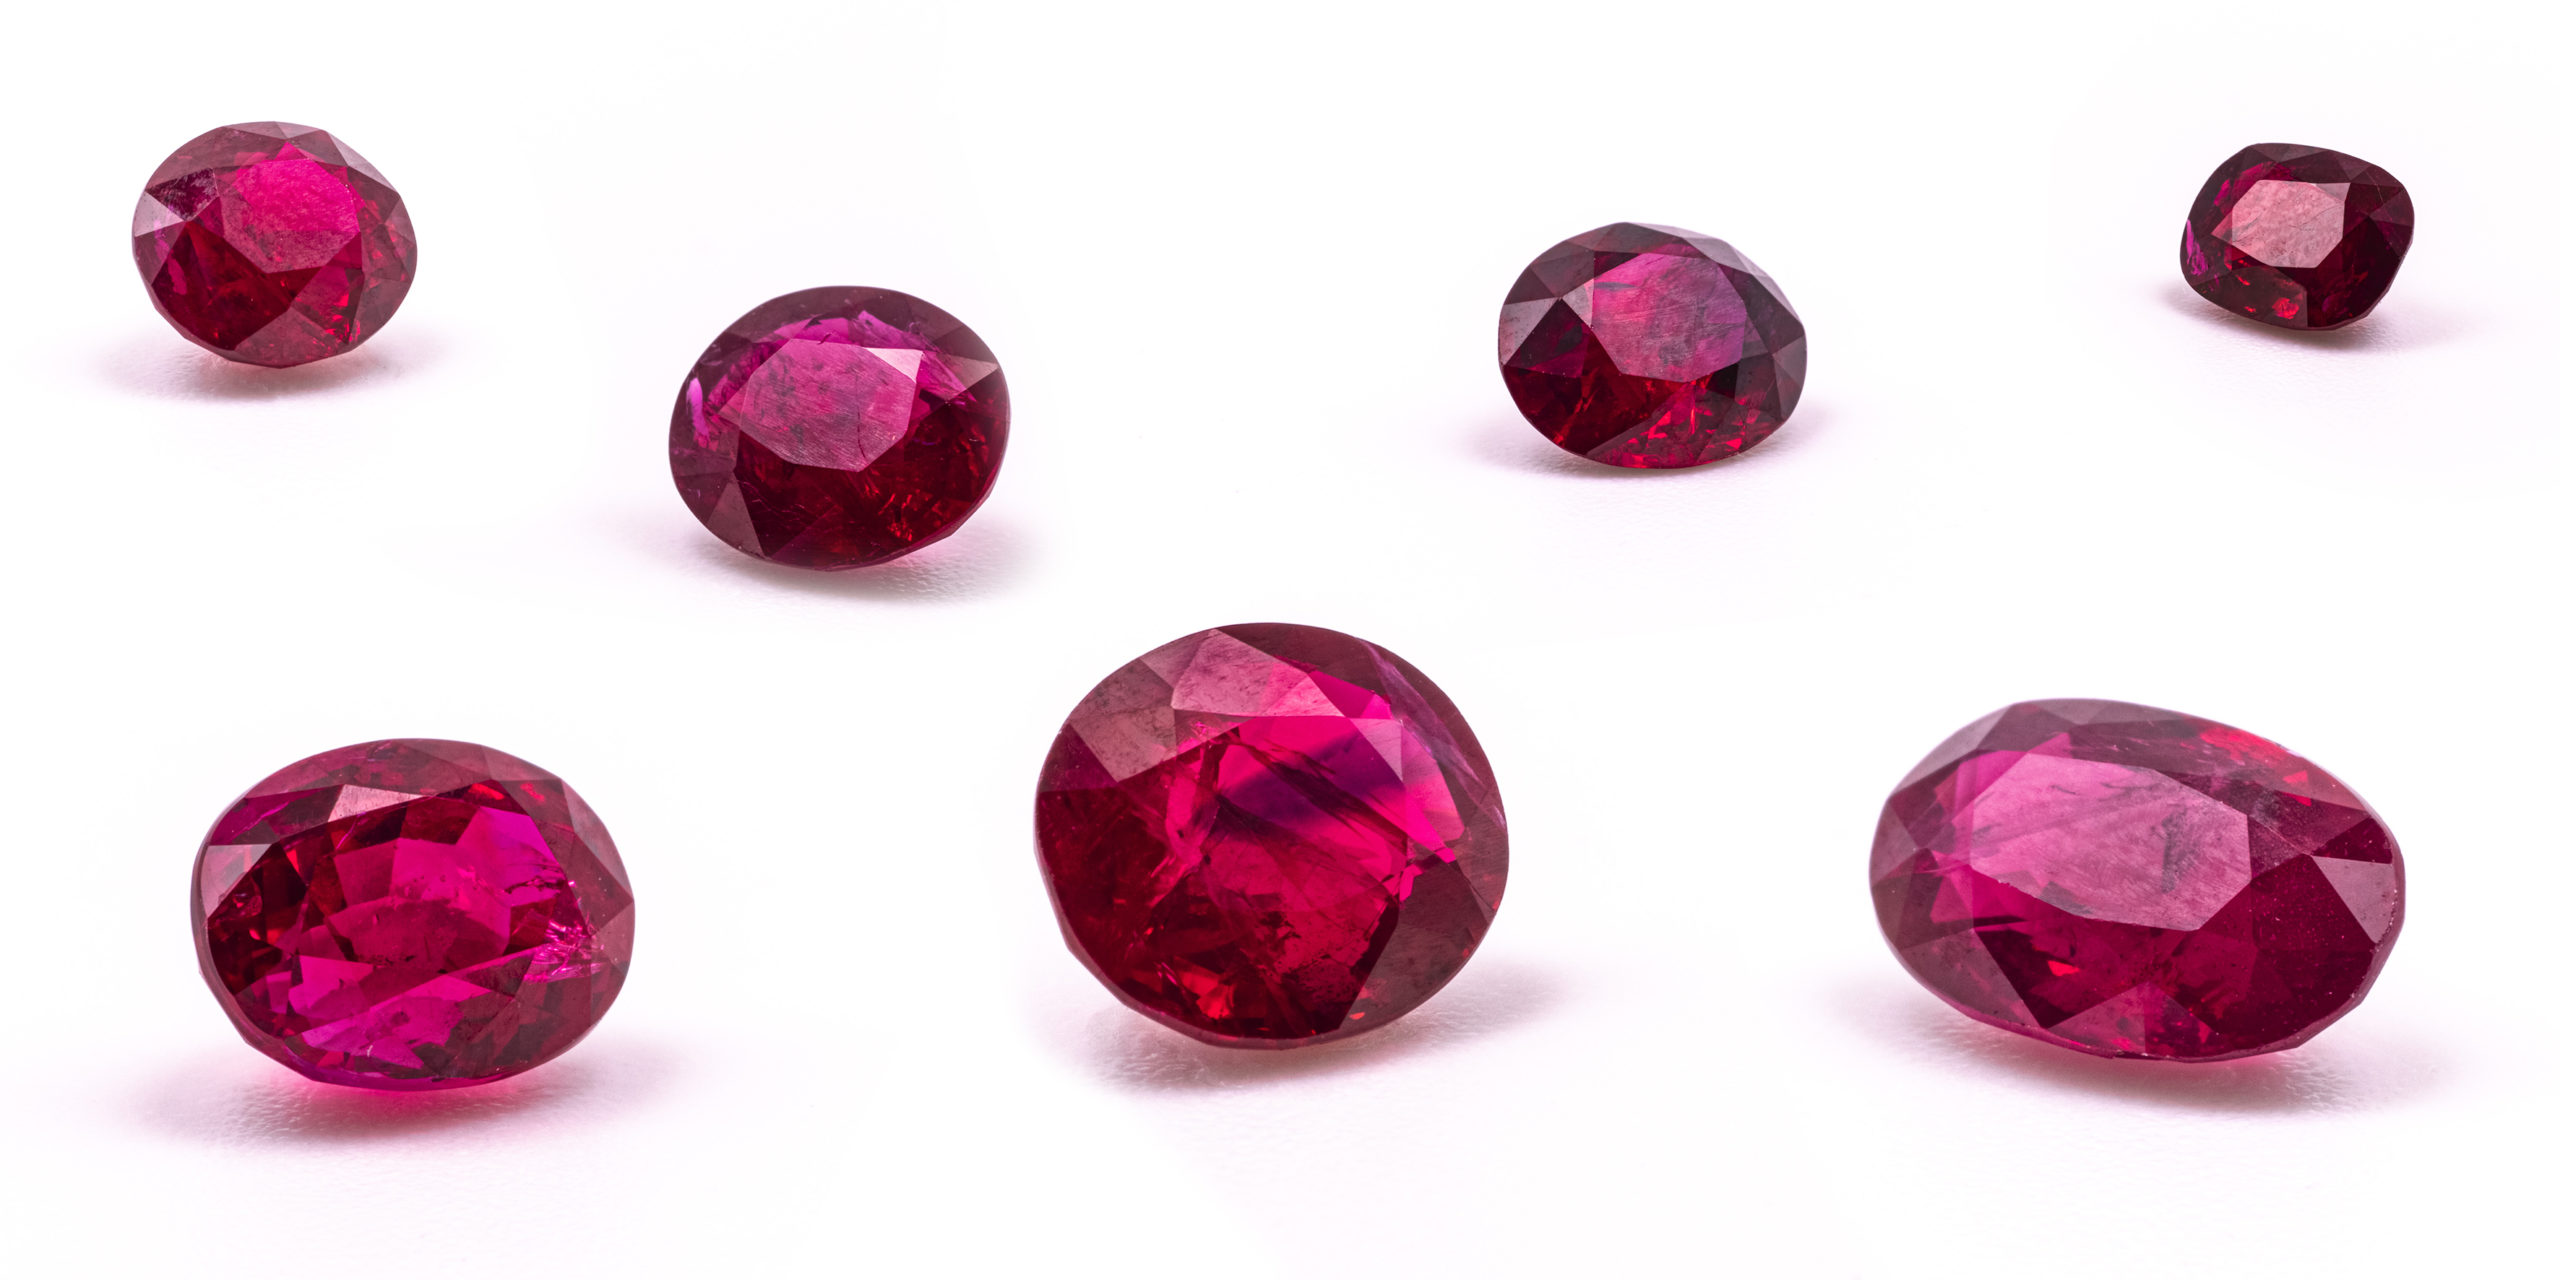 Forces of nature create gemstones